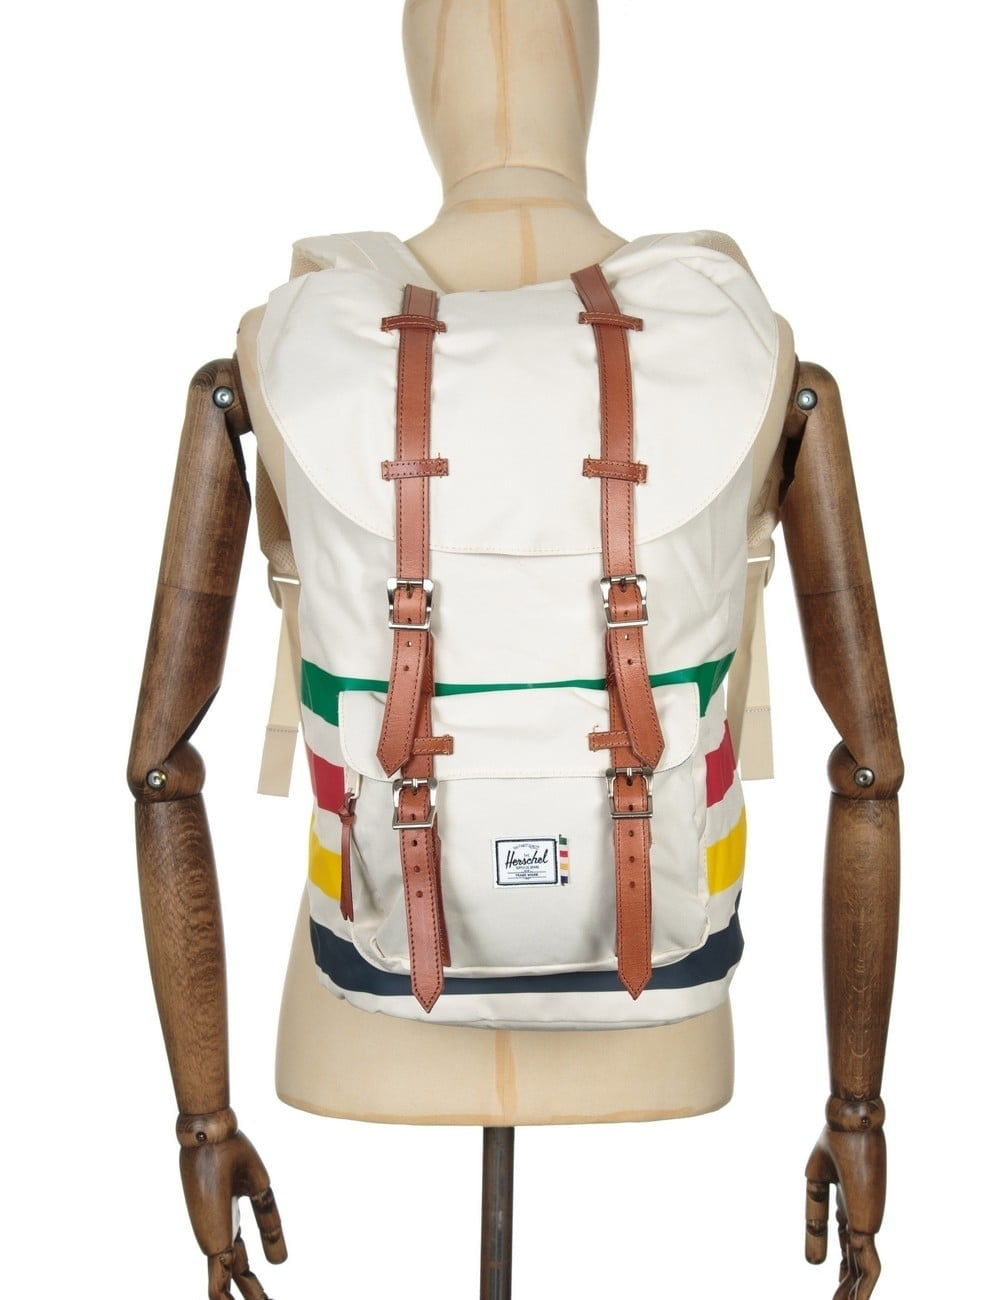 da88e98fa3a Herschel Supply Co Little America 25L Backpack - Hudson Bay Co ...